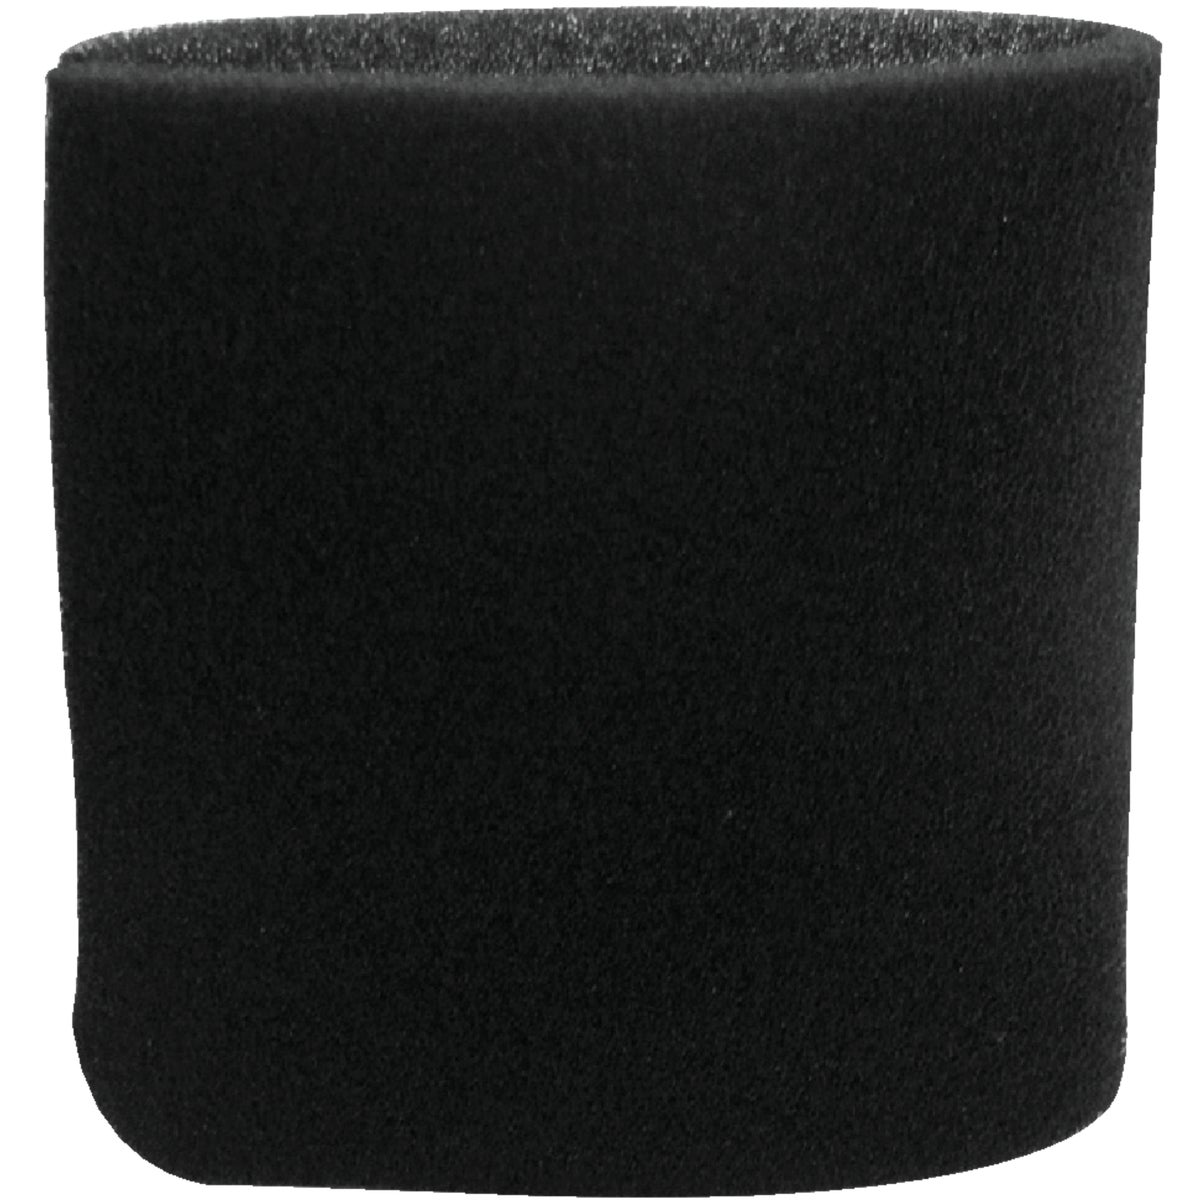 2.5-4GAL VAC FOAM FILTER